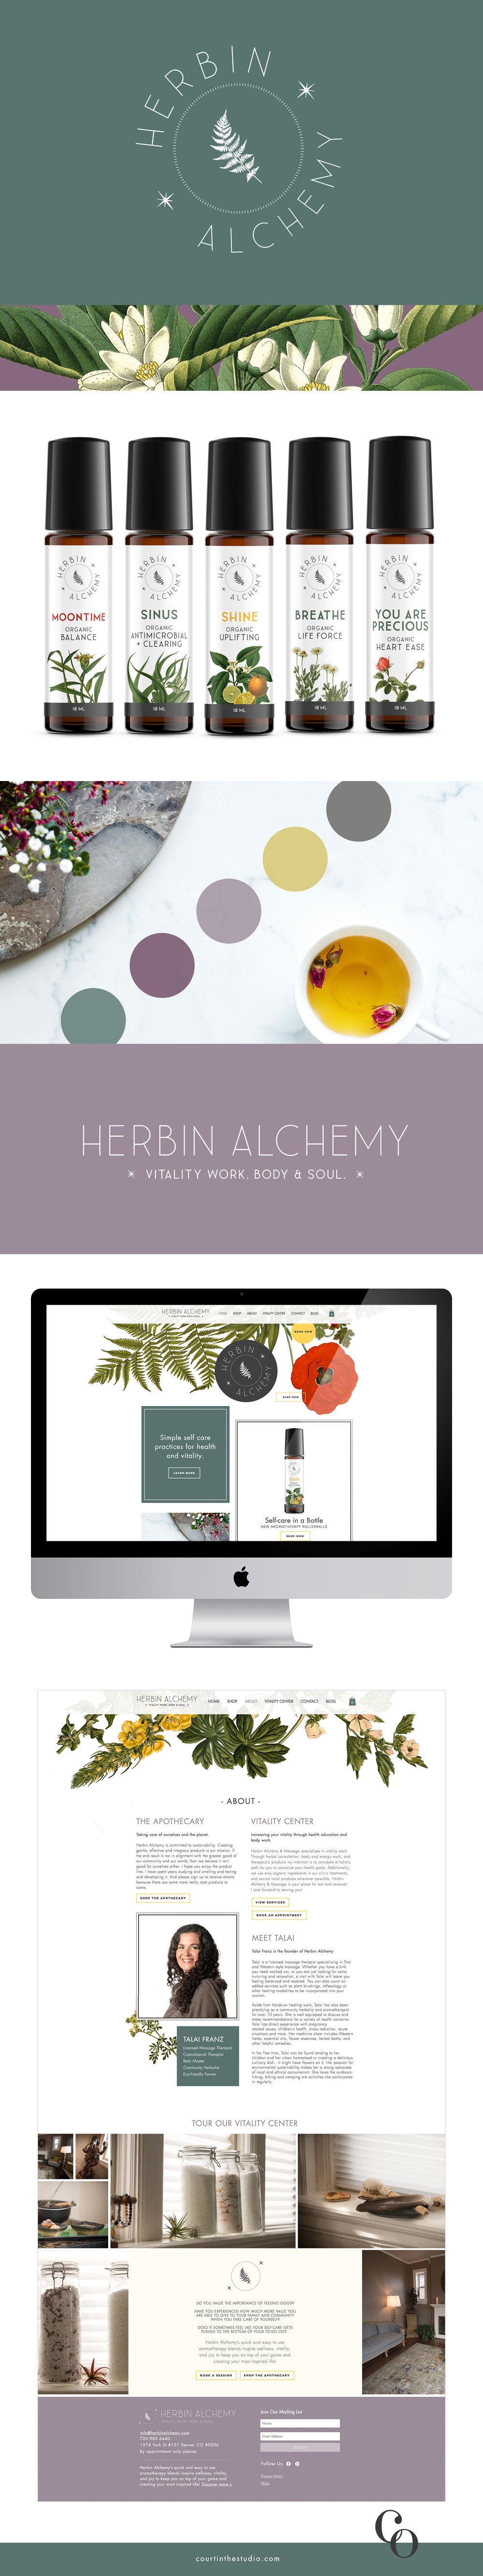 Herbin Alchemy Branding, Packaging, and Web Design by Courtney Oliver | courtinthestudio.com